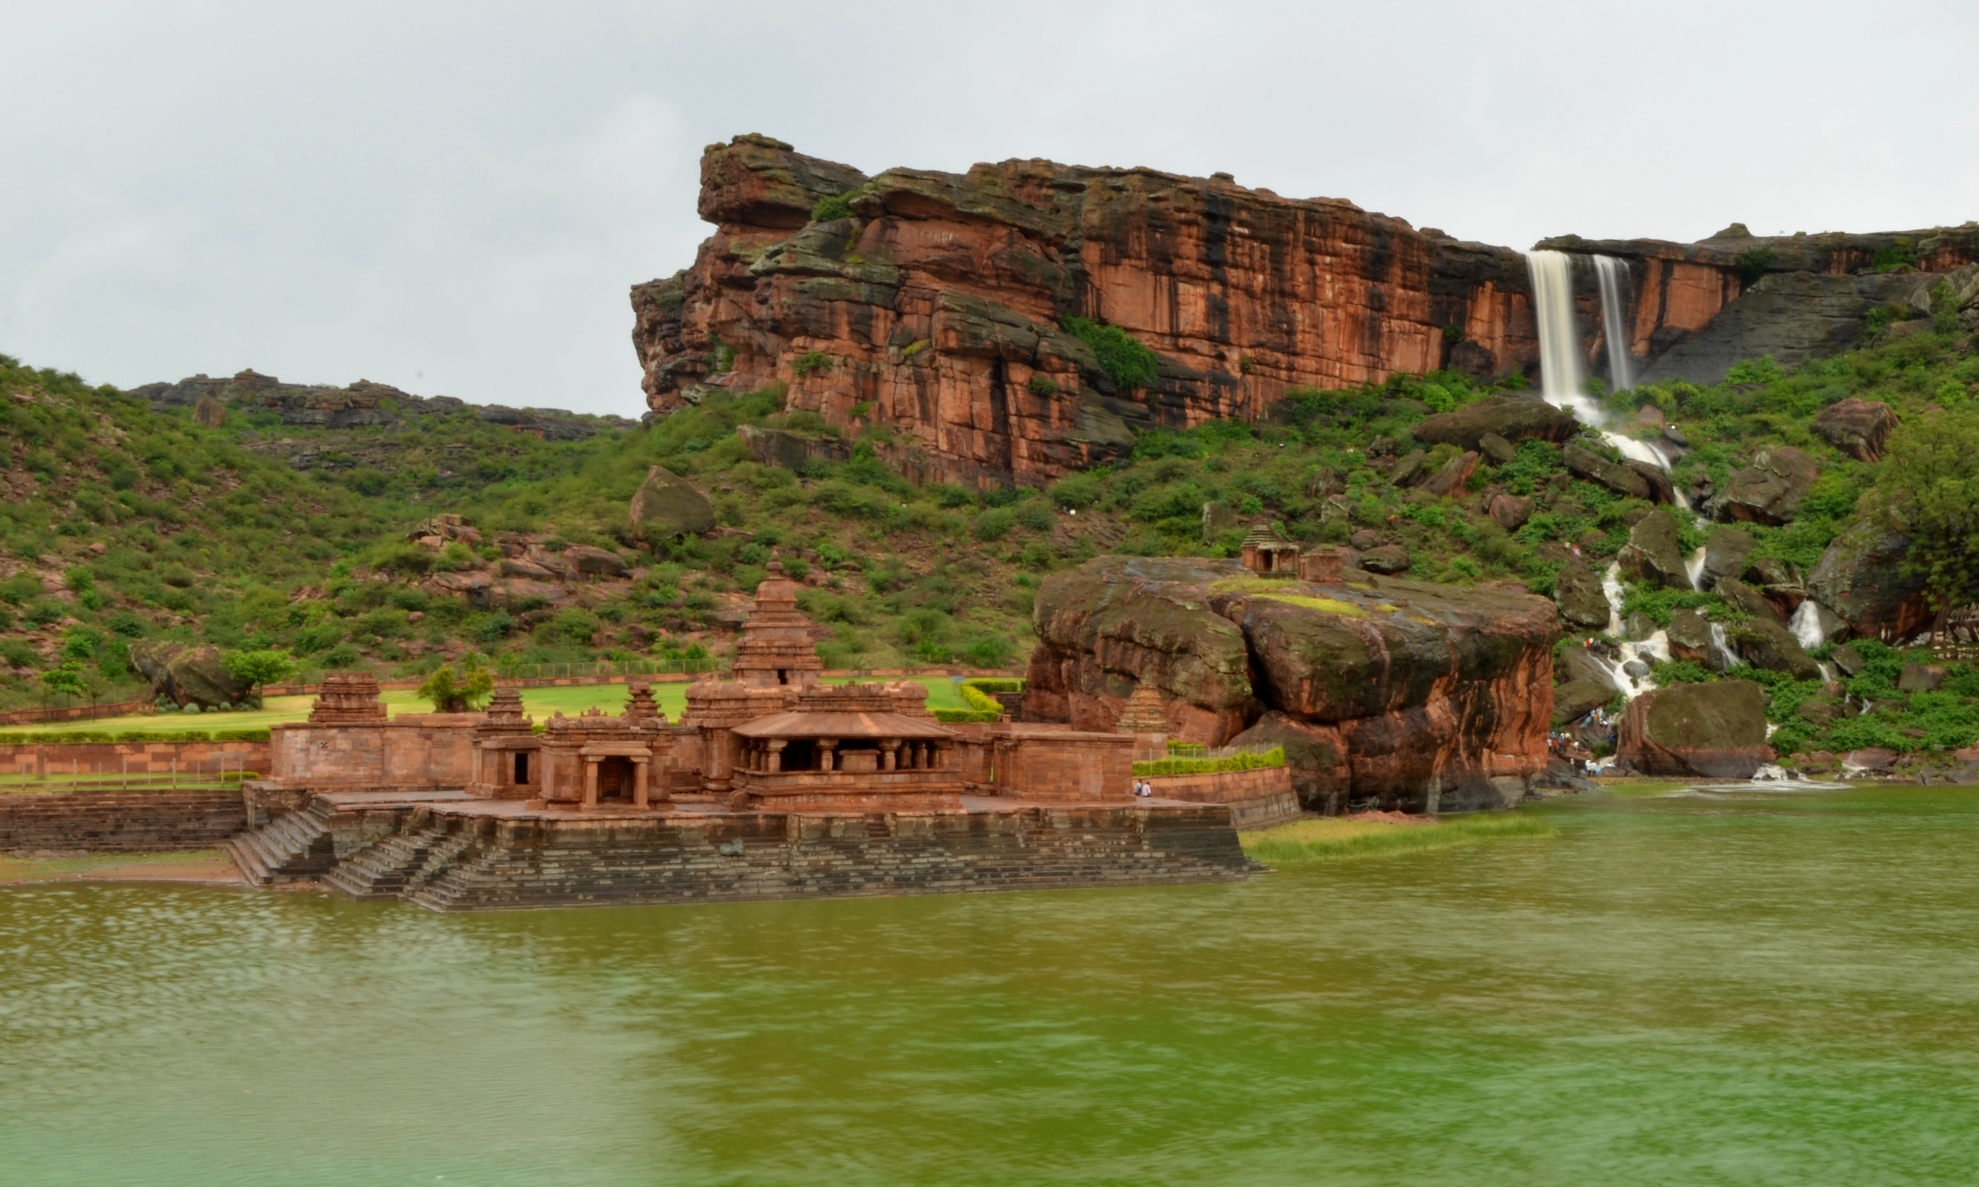 Bhutanatha Temple at Badami